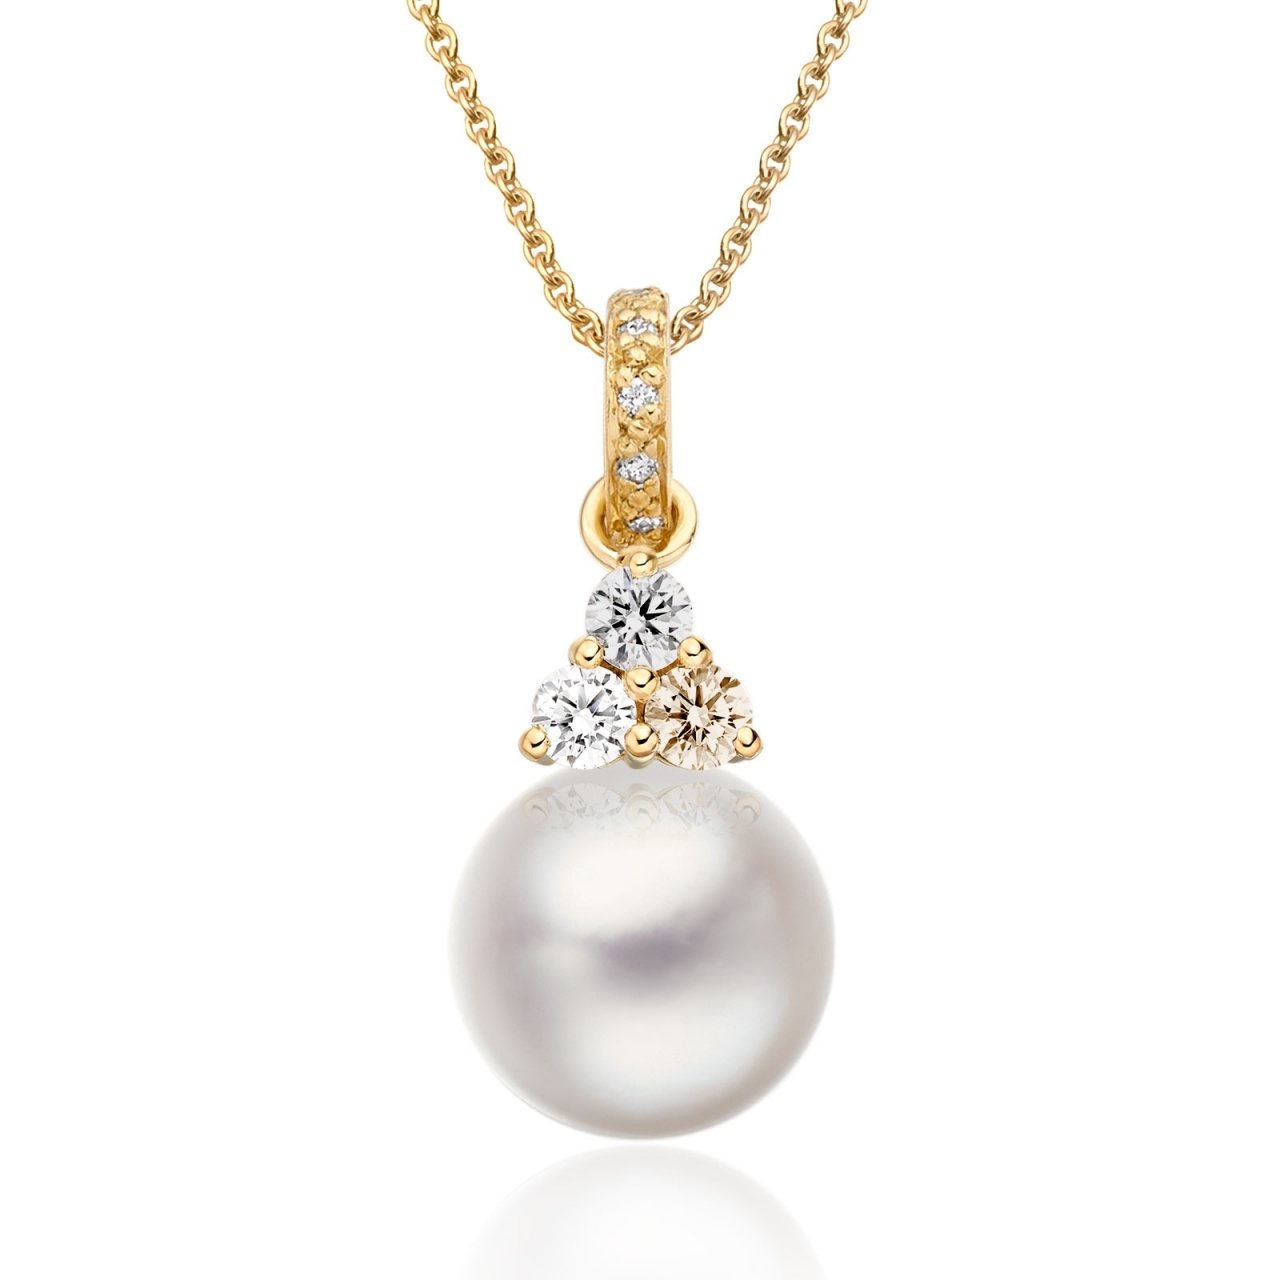 Astral Moon Akoya Pearl Pendant in Yellow Gold-APWRYG1332-1